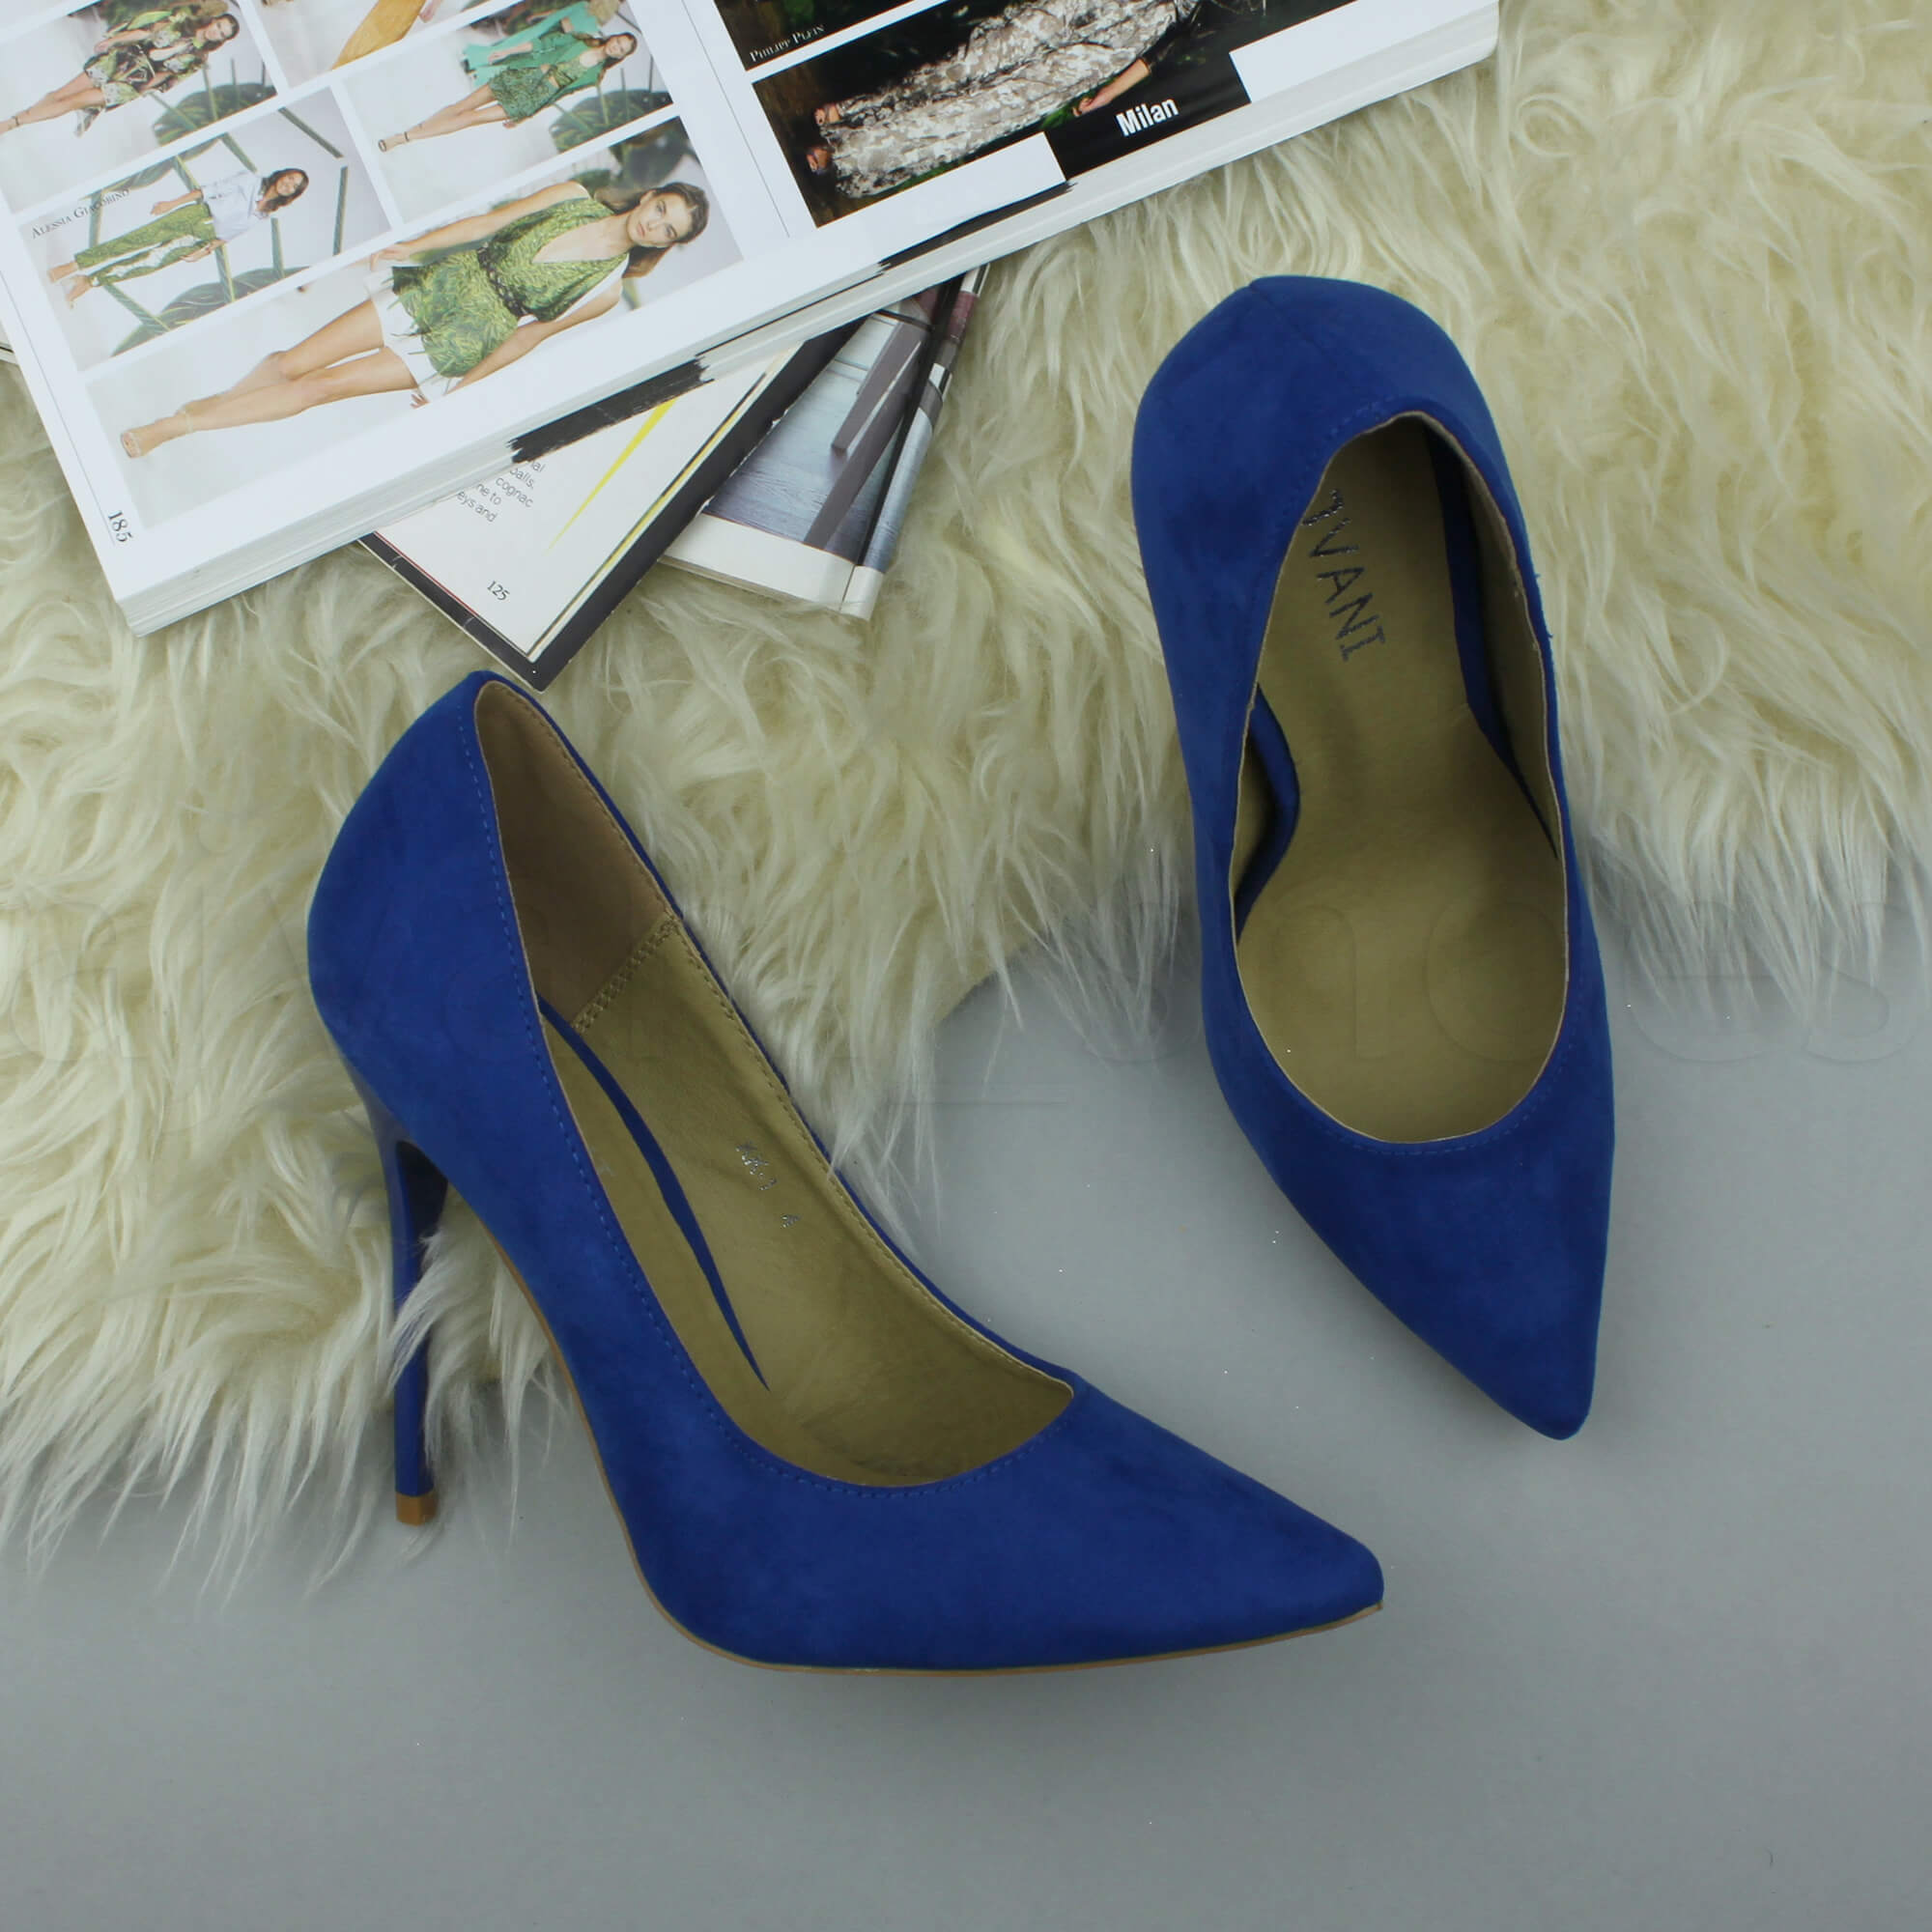 WOMENS-LADIES-HIGH-HEEL-POINTED-CONTRAST-COURT-SMART-PARTY-WORK-SHOES-PUMPS-SIZE thumbnail 45